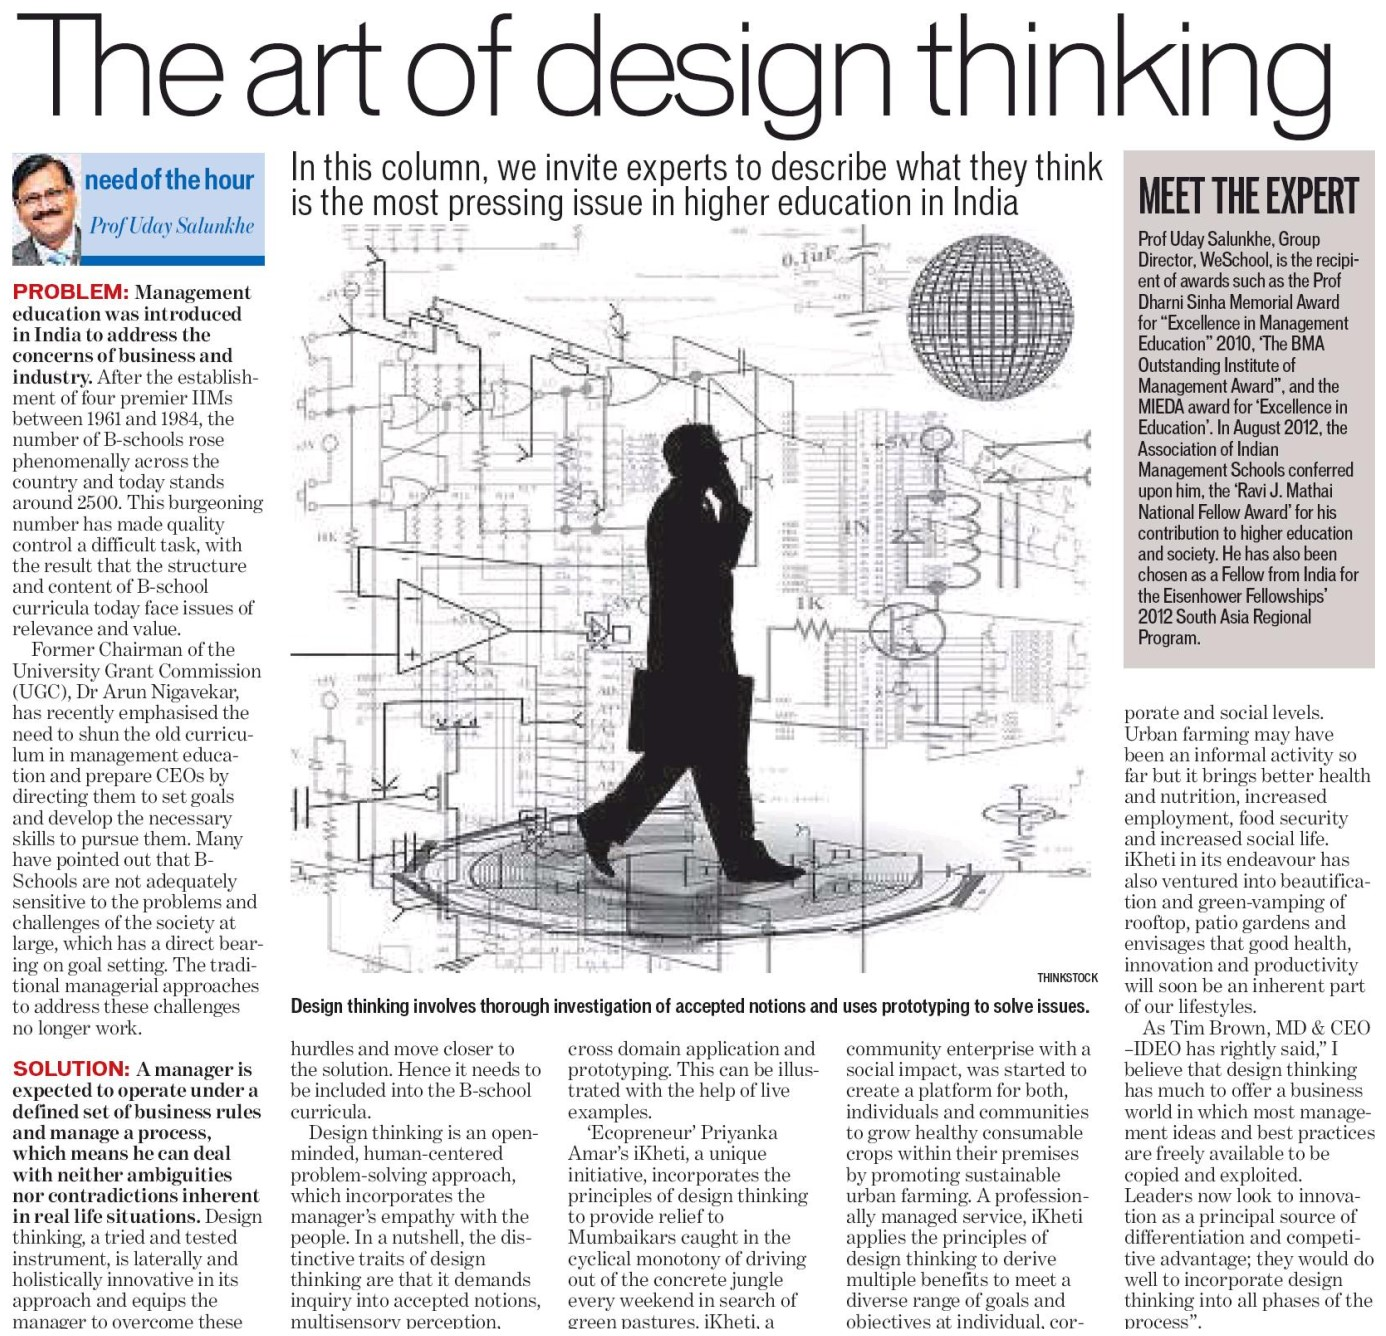 The art of design thinking,  Prof Dr Uday Salunkhe shares his thoughts on the philosophy...